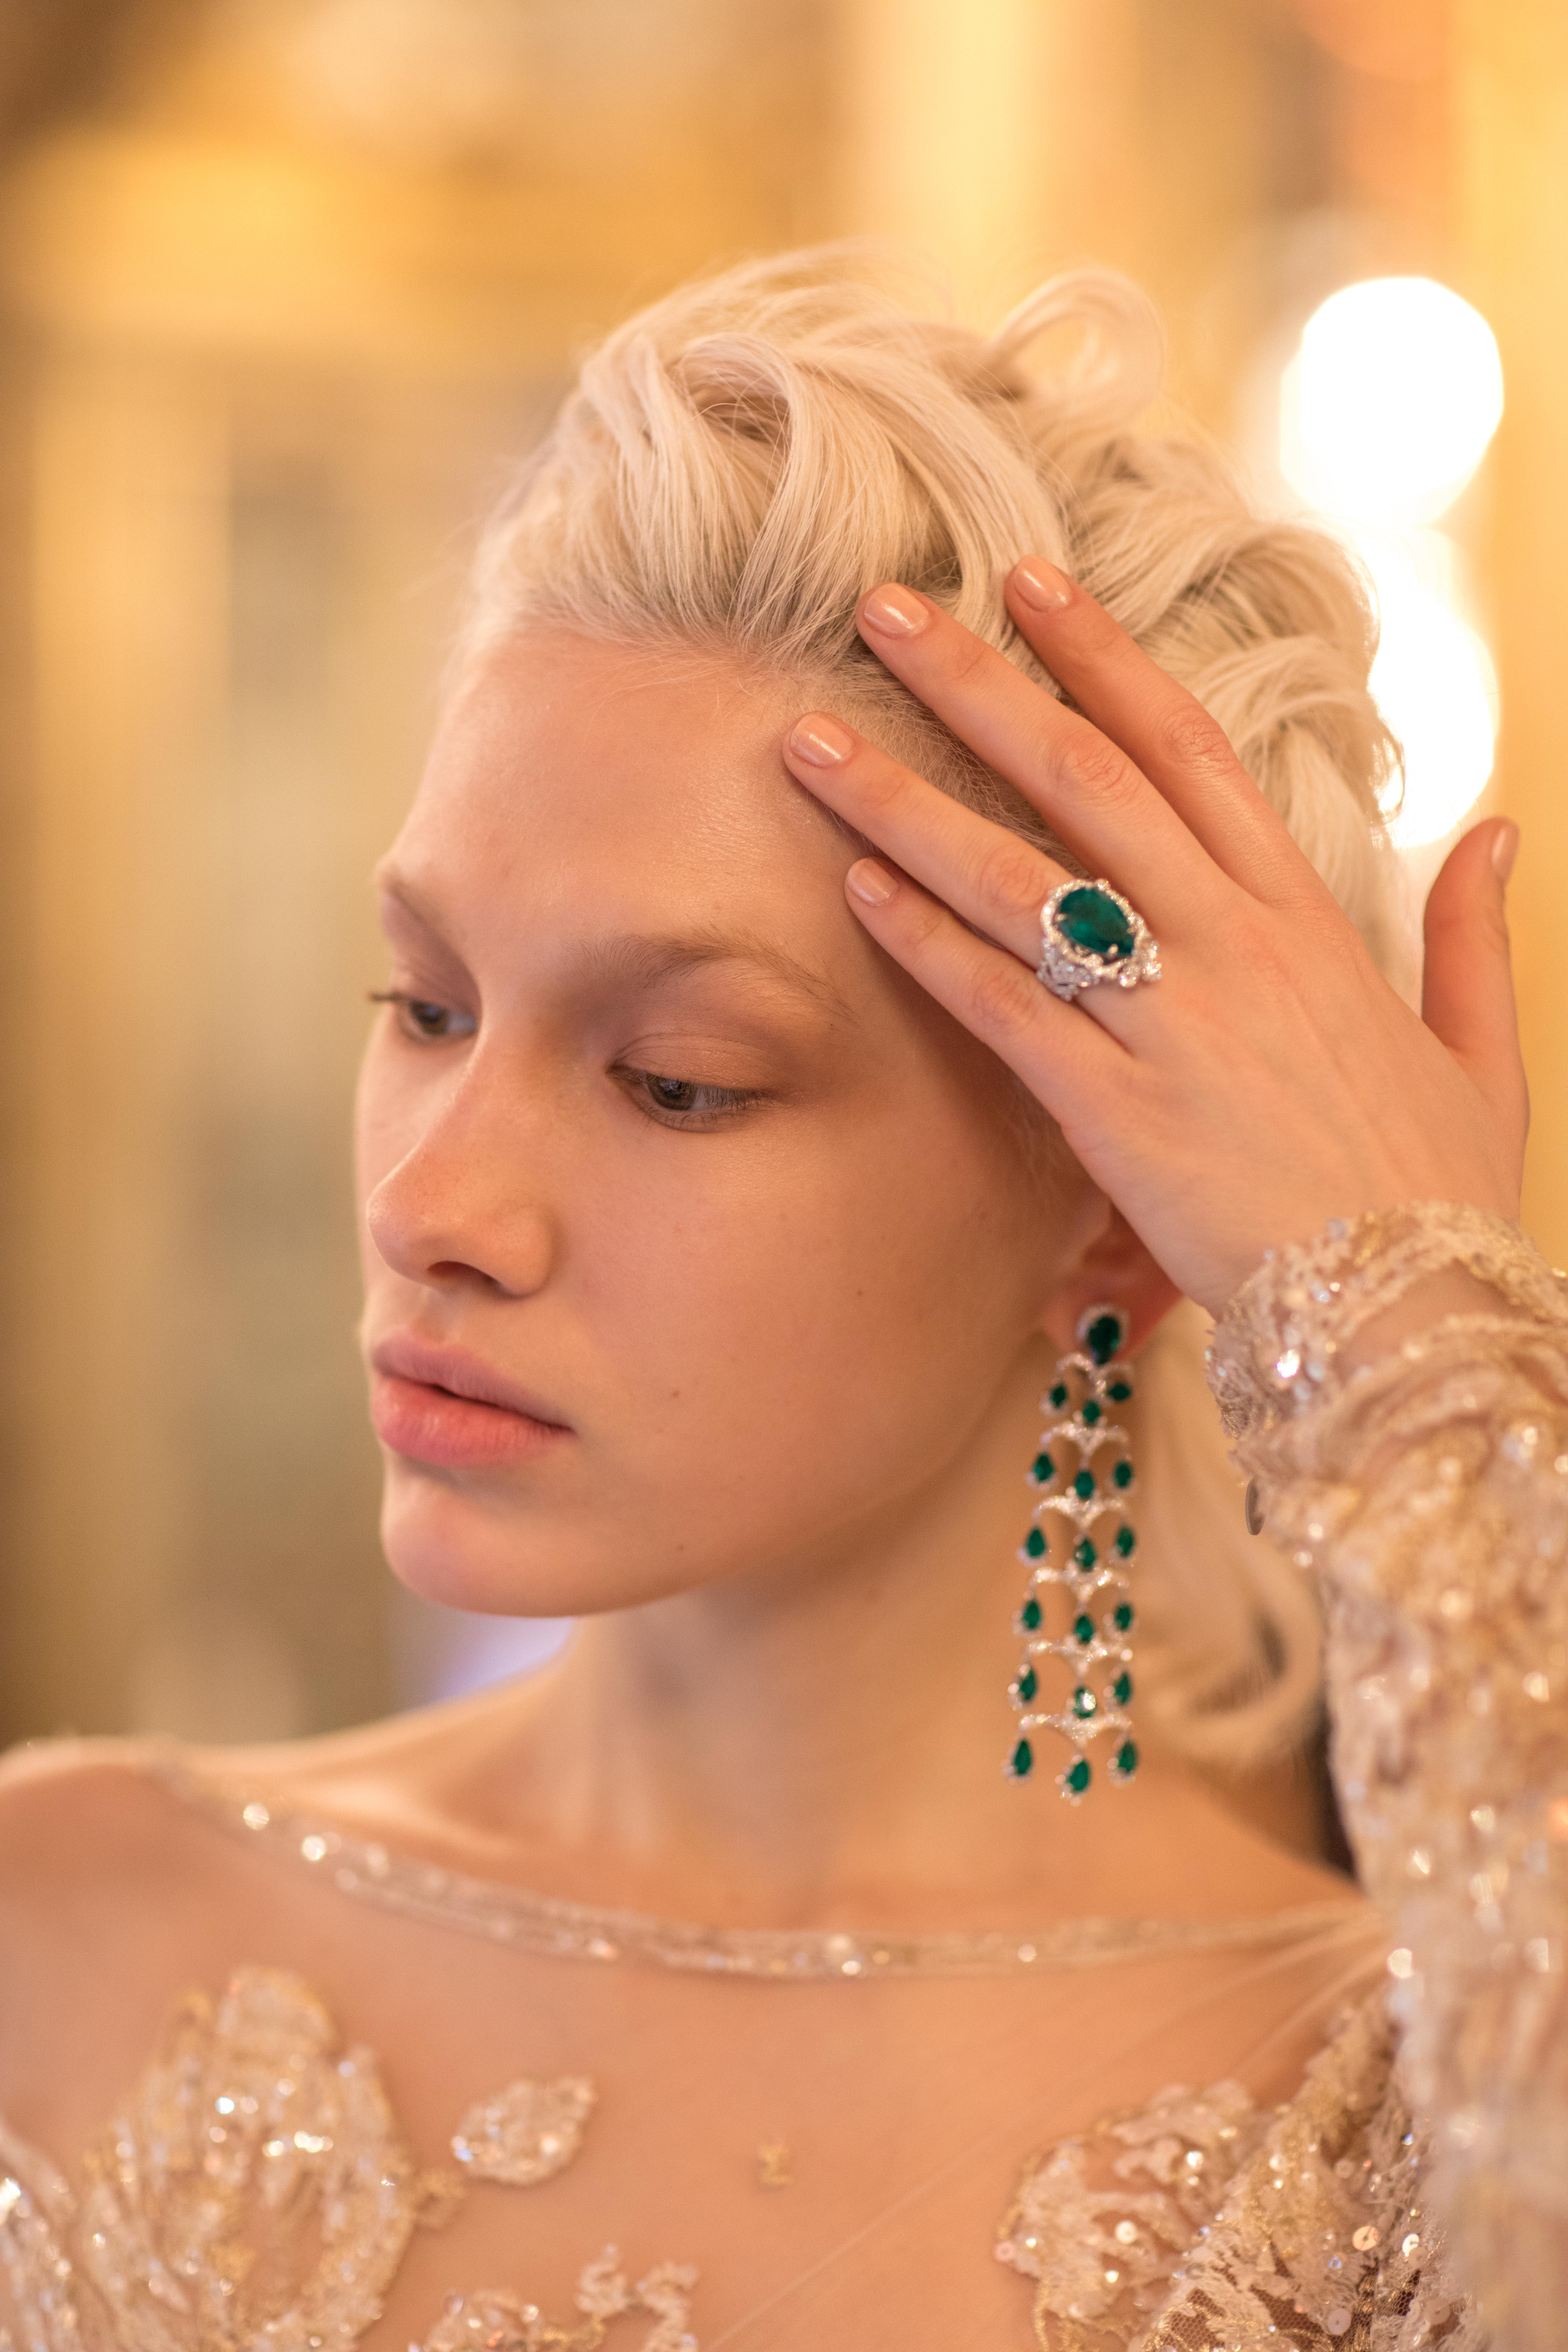 Image of model wearing emerald and Diamond chandelier earrings and emerald and Diamond ring